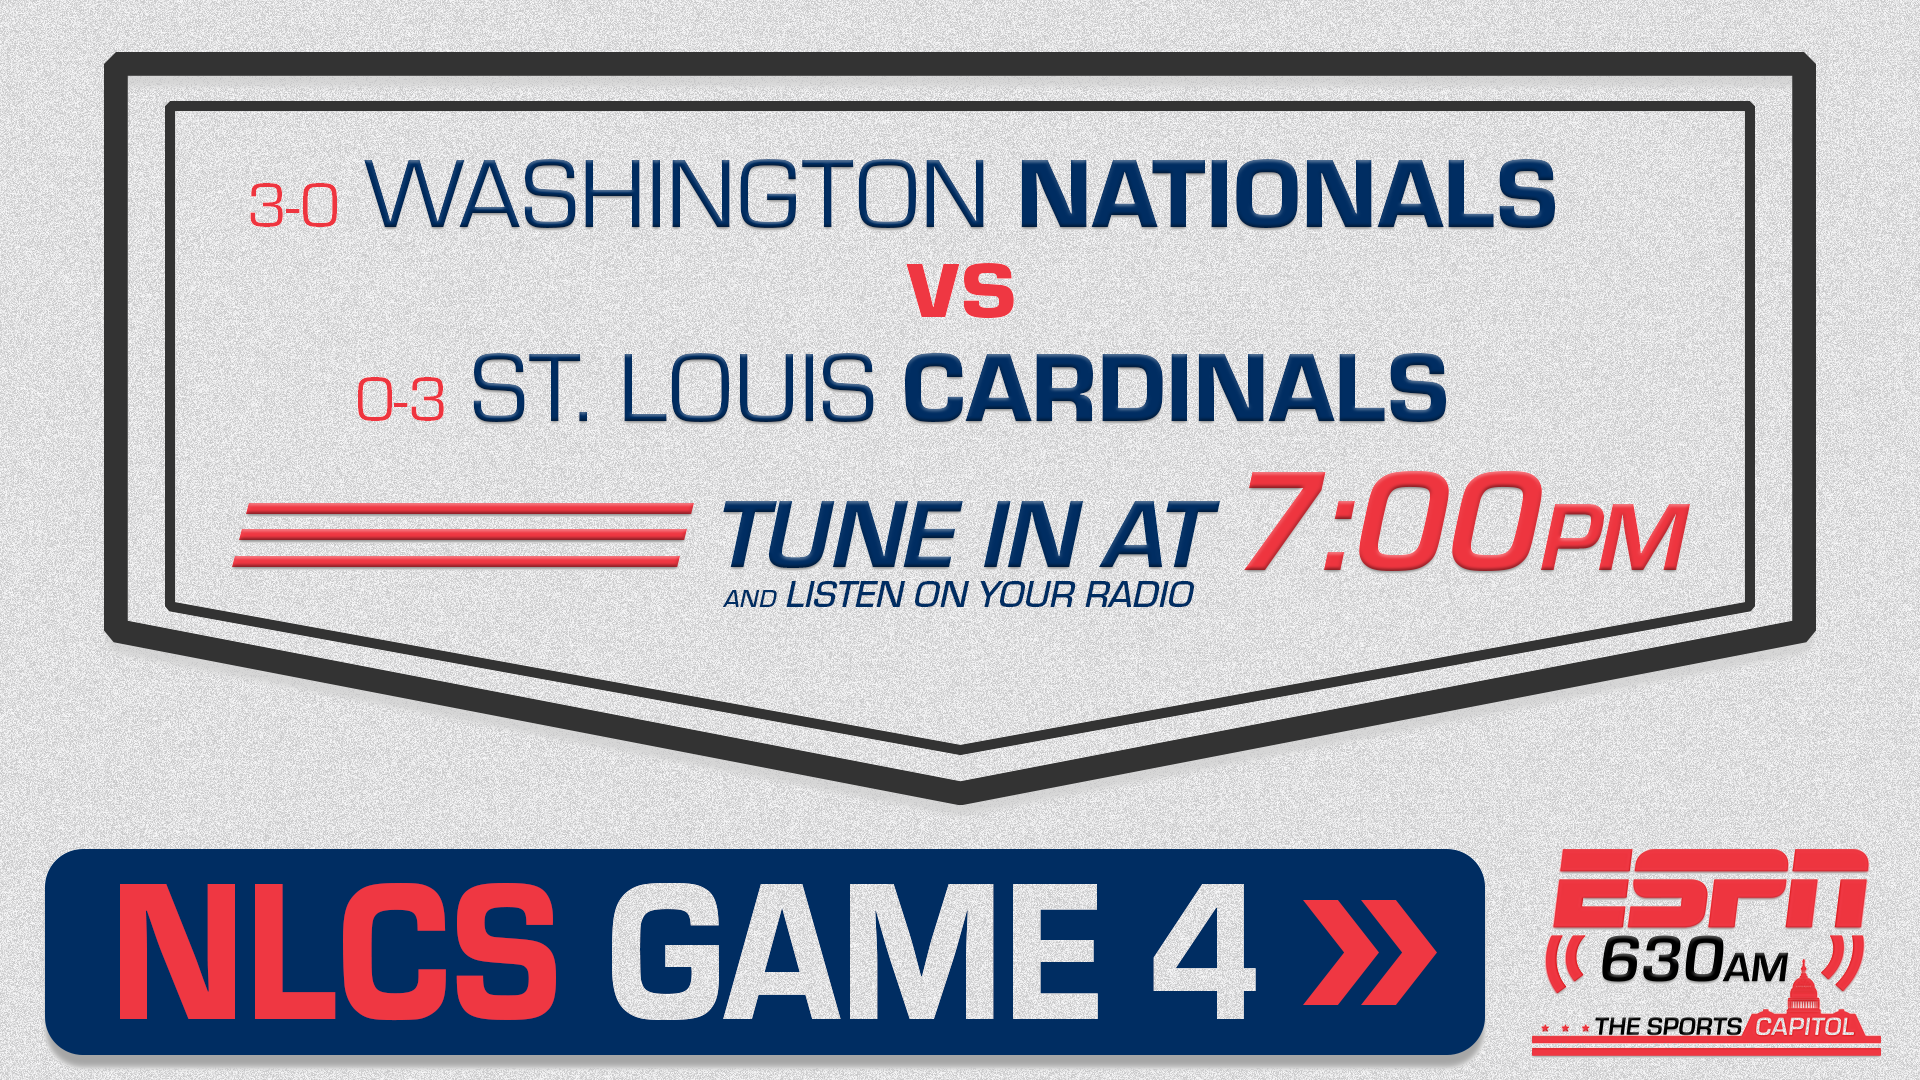 NLCS-game-41